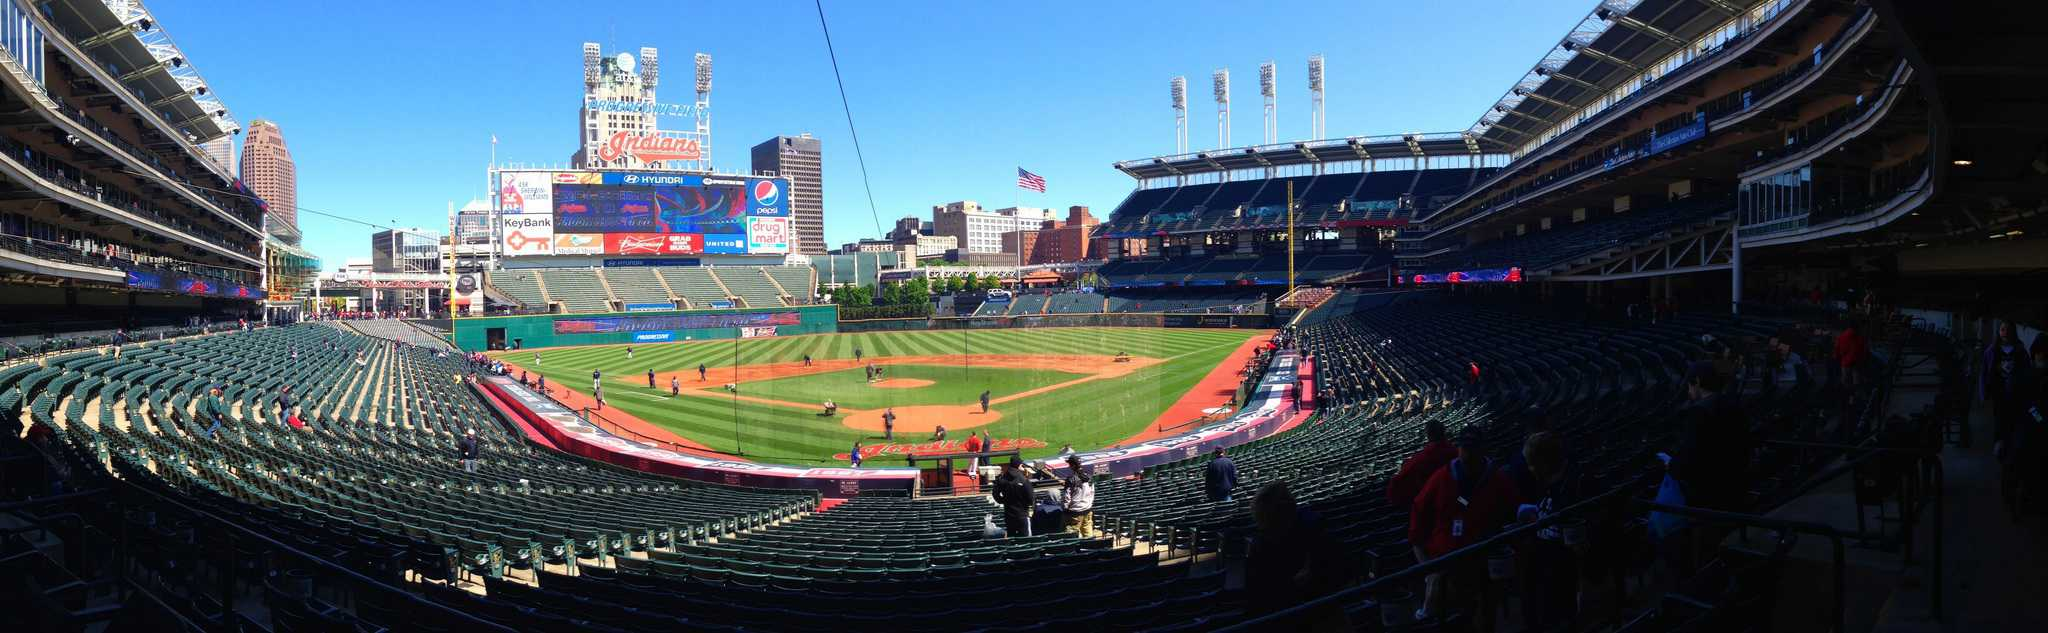 SCoreboard Panorama at Progressive Field